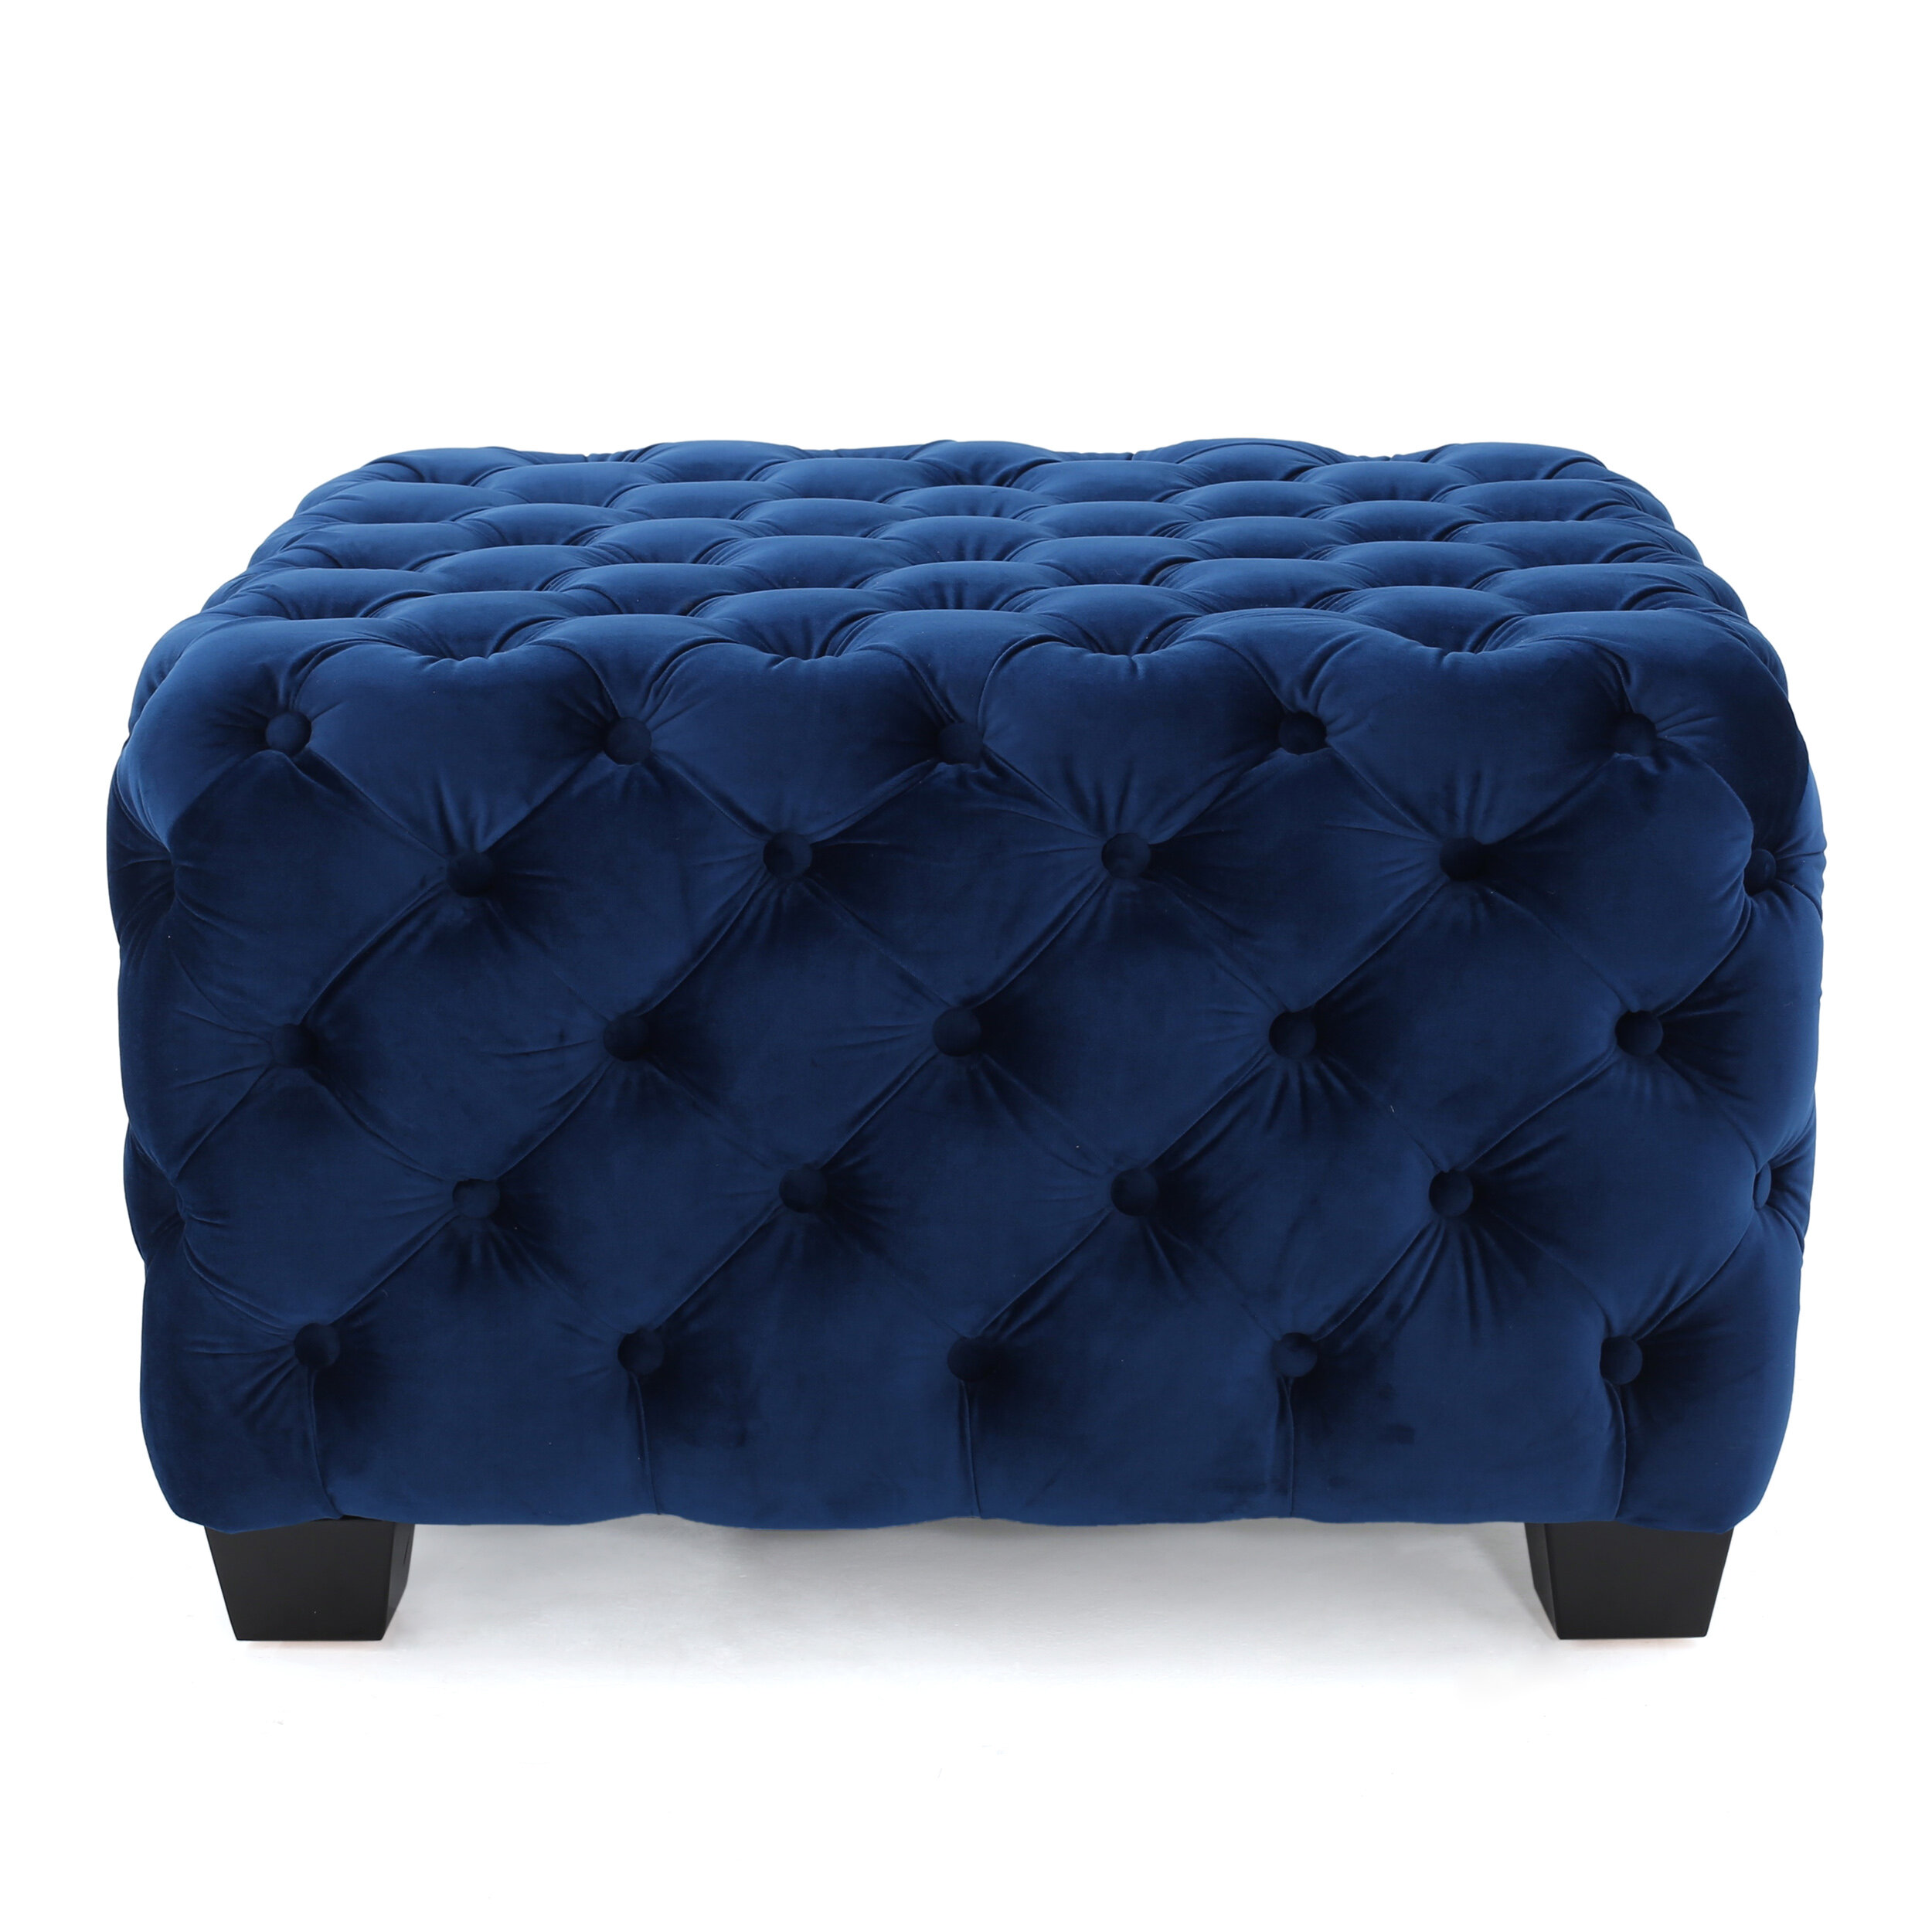 Willa Arlo Interiors Geoffrey29 Velvet Tufted Square Cocktail Ottoman Reviews Wayfair